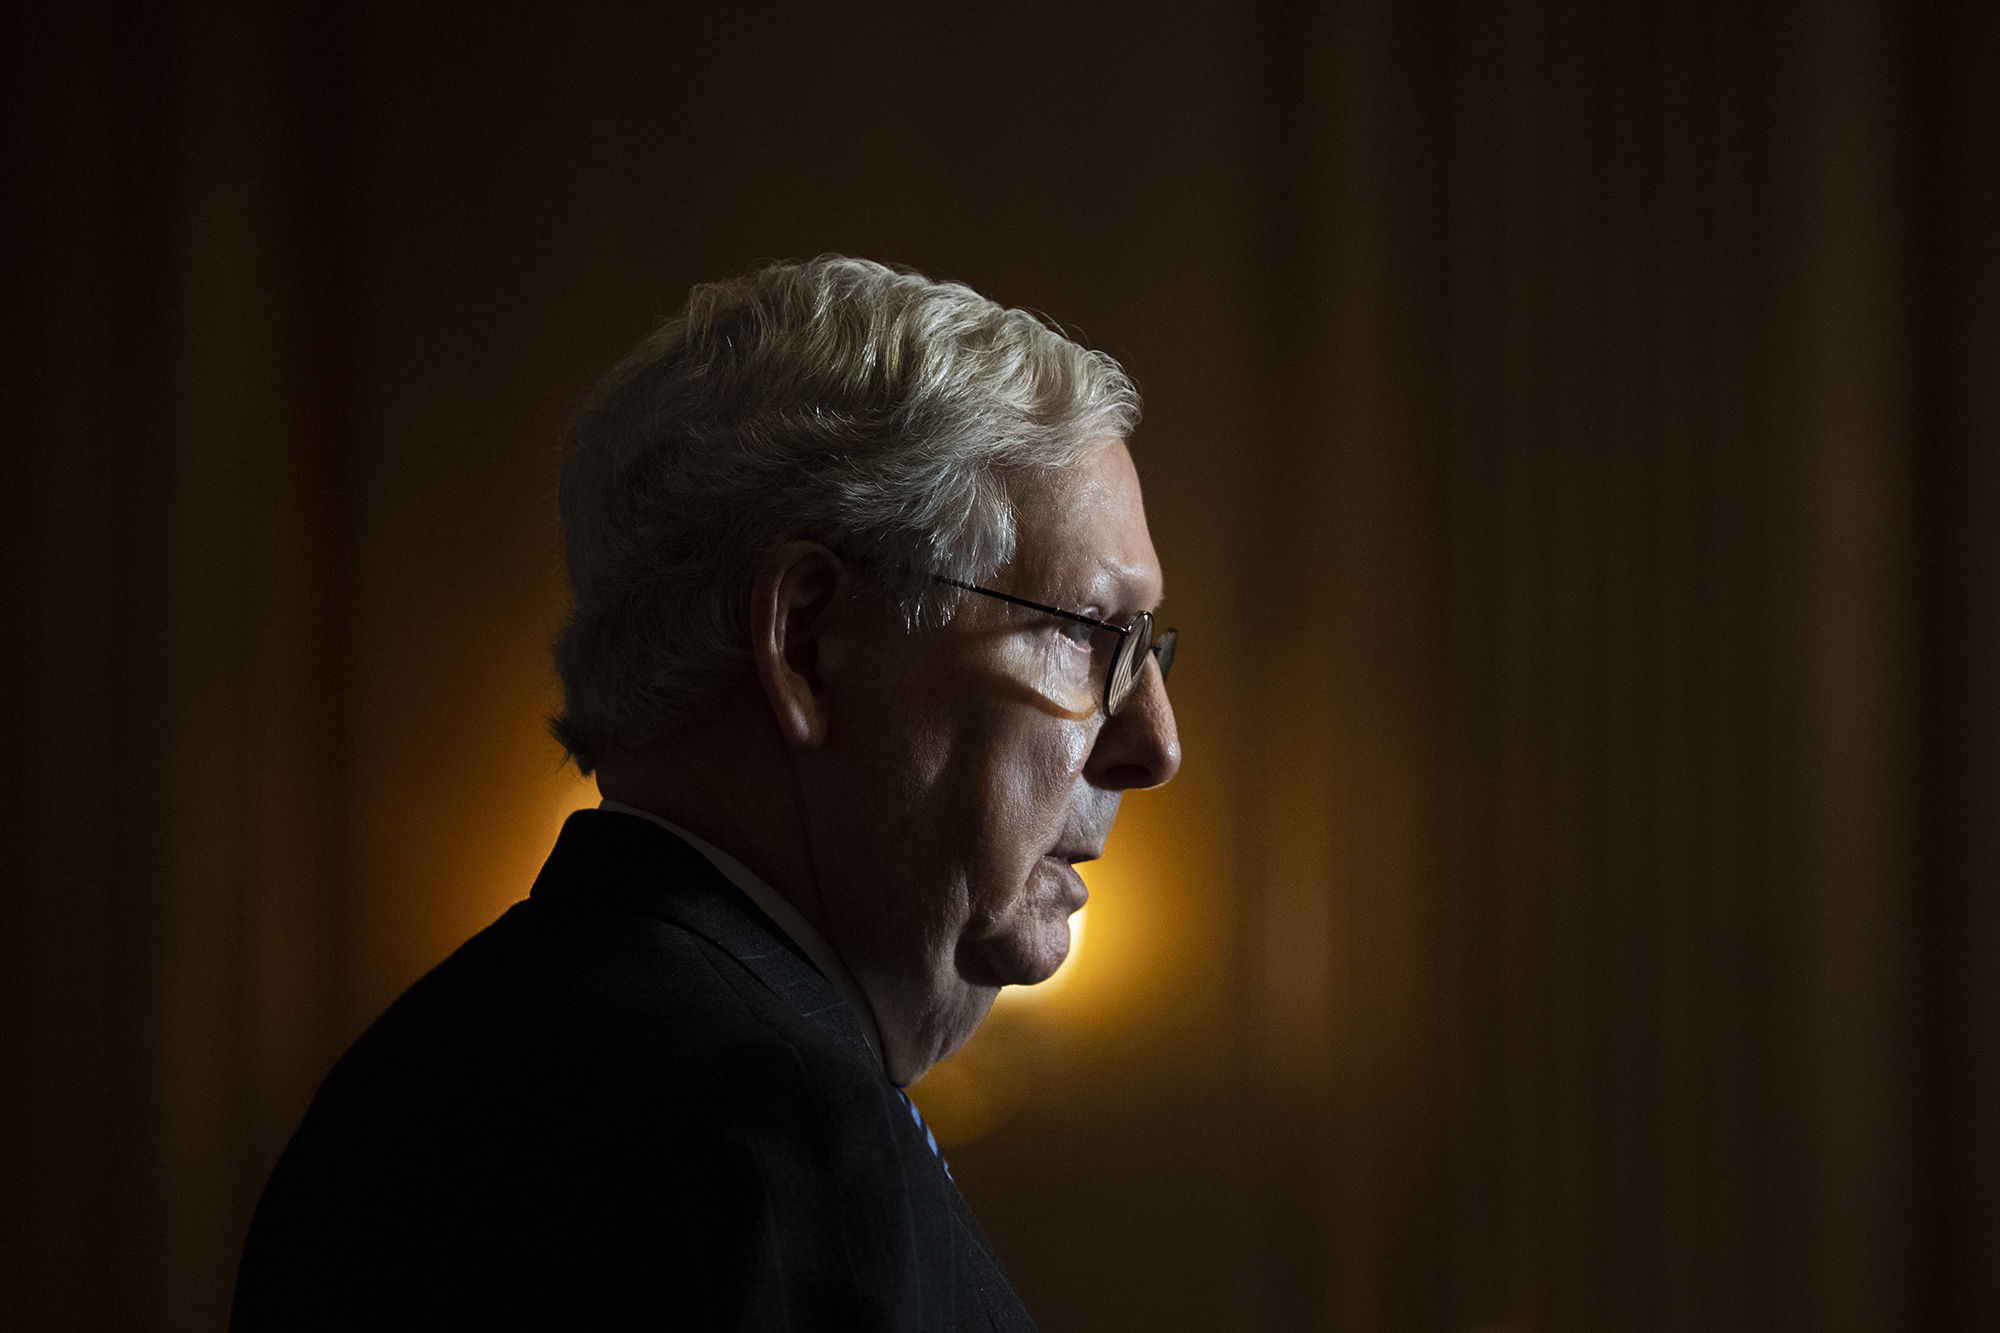 Senate Majority Leader Mitch McConnell conducts a news conference in the U.S. Capitol after the Senate Republican Policy luncheon on December 15.